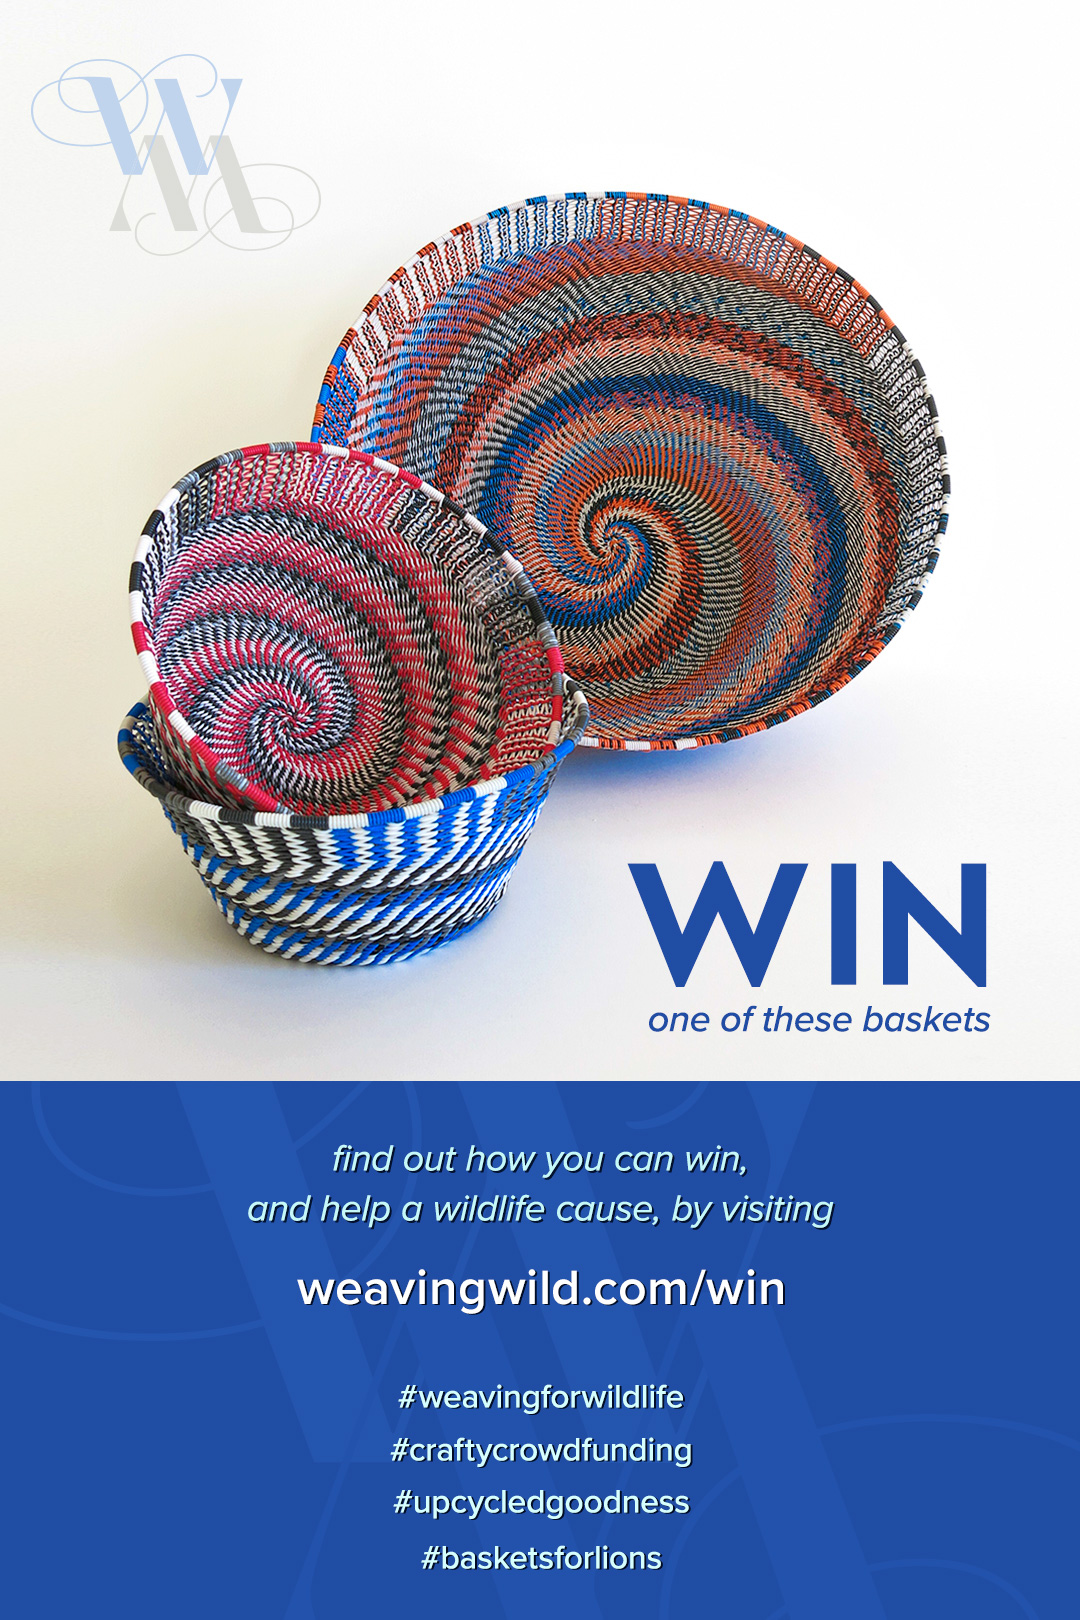 Pin this image. Find out how you can win a basket while helping a wildlife cause.